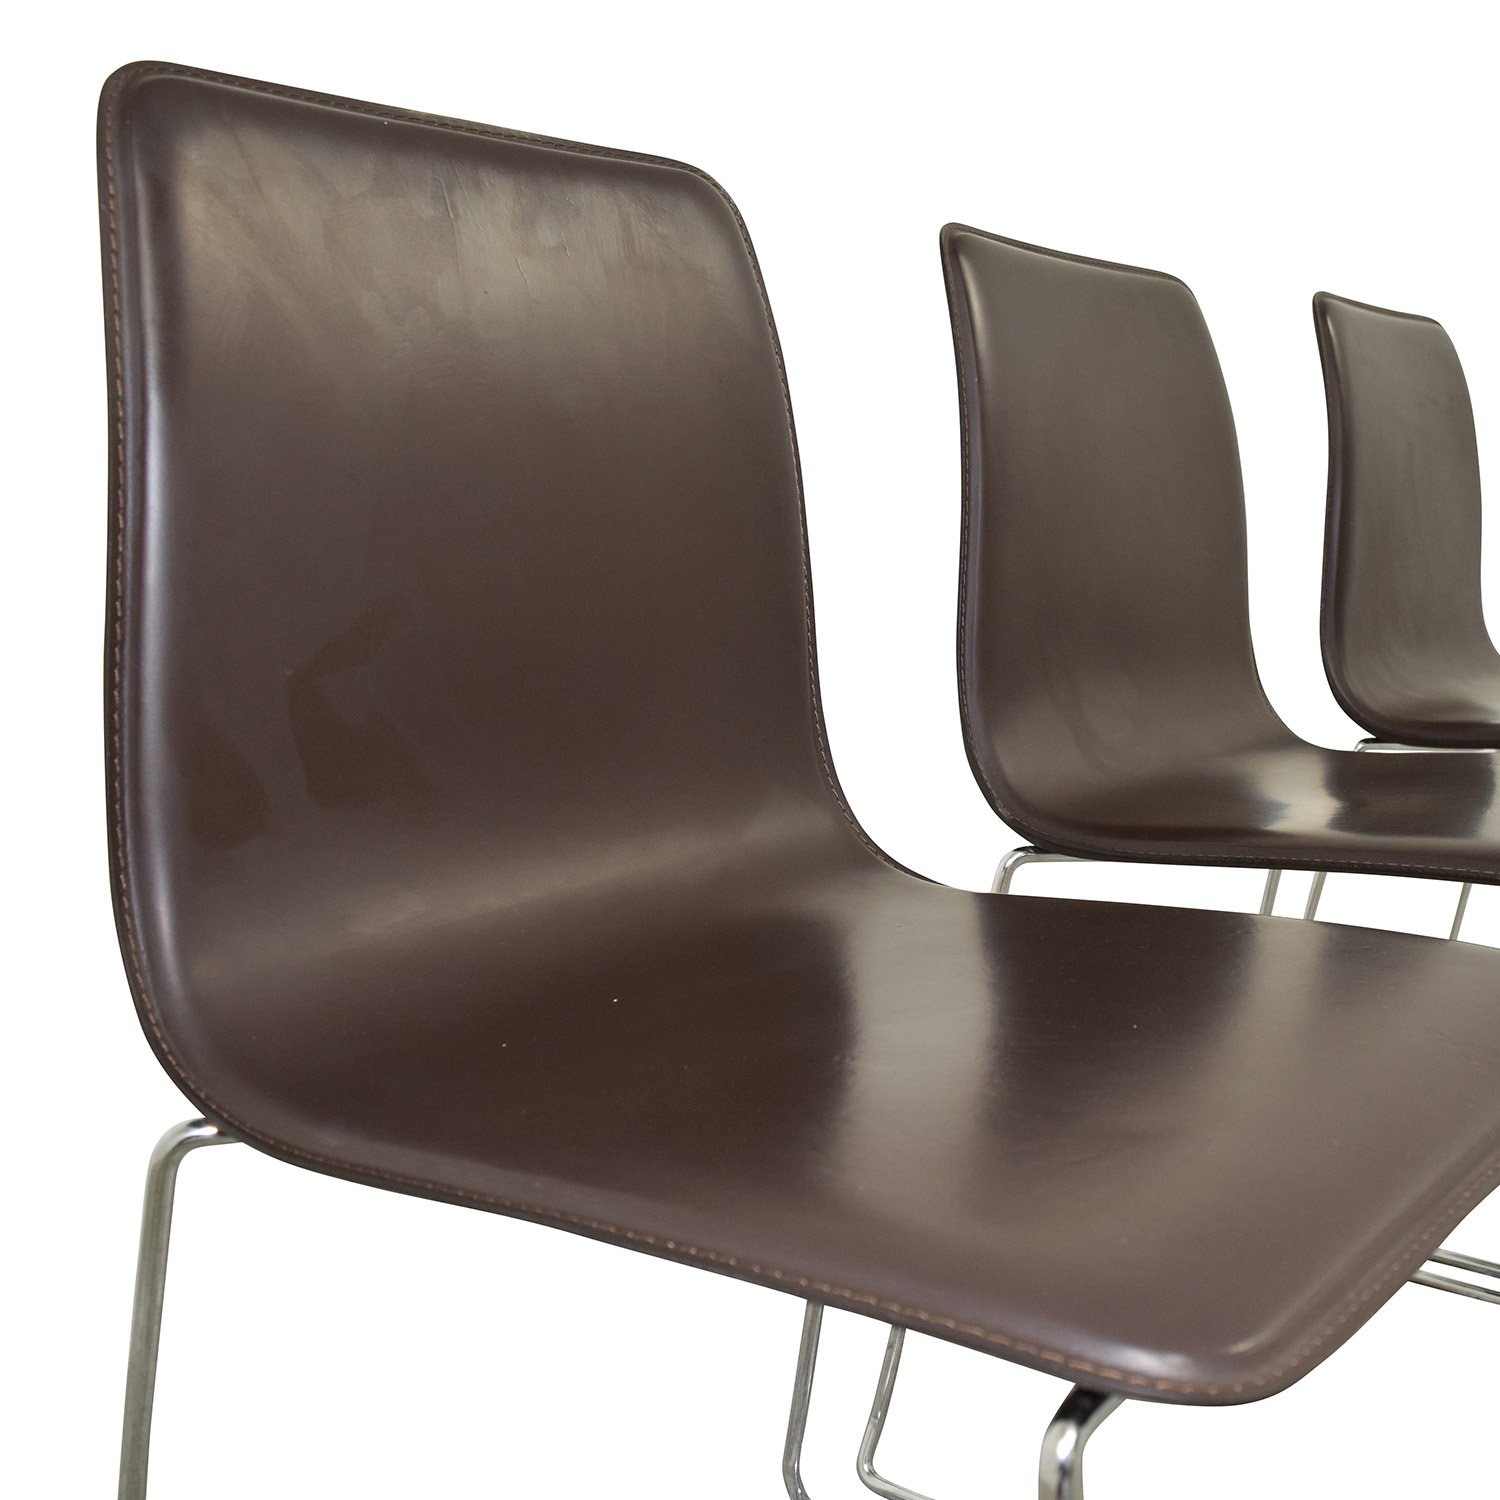 ABC Home & Carpet ABC Home & Carpet Leather and Chrome Chairs, Set of Three price